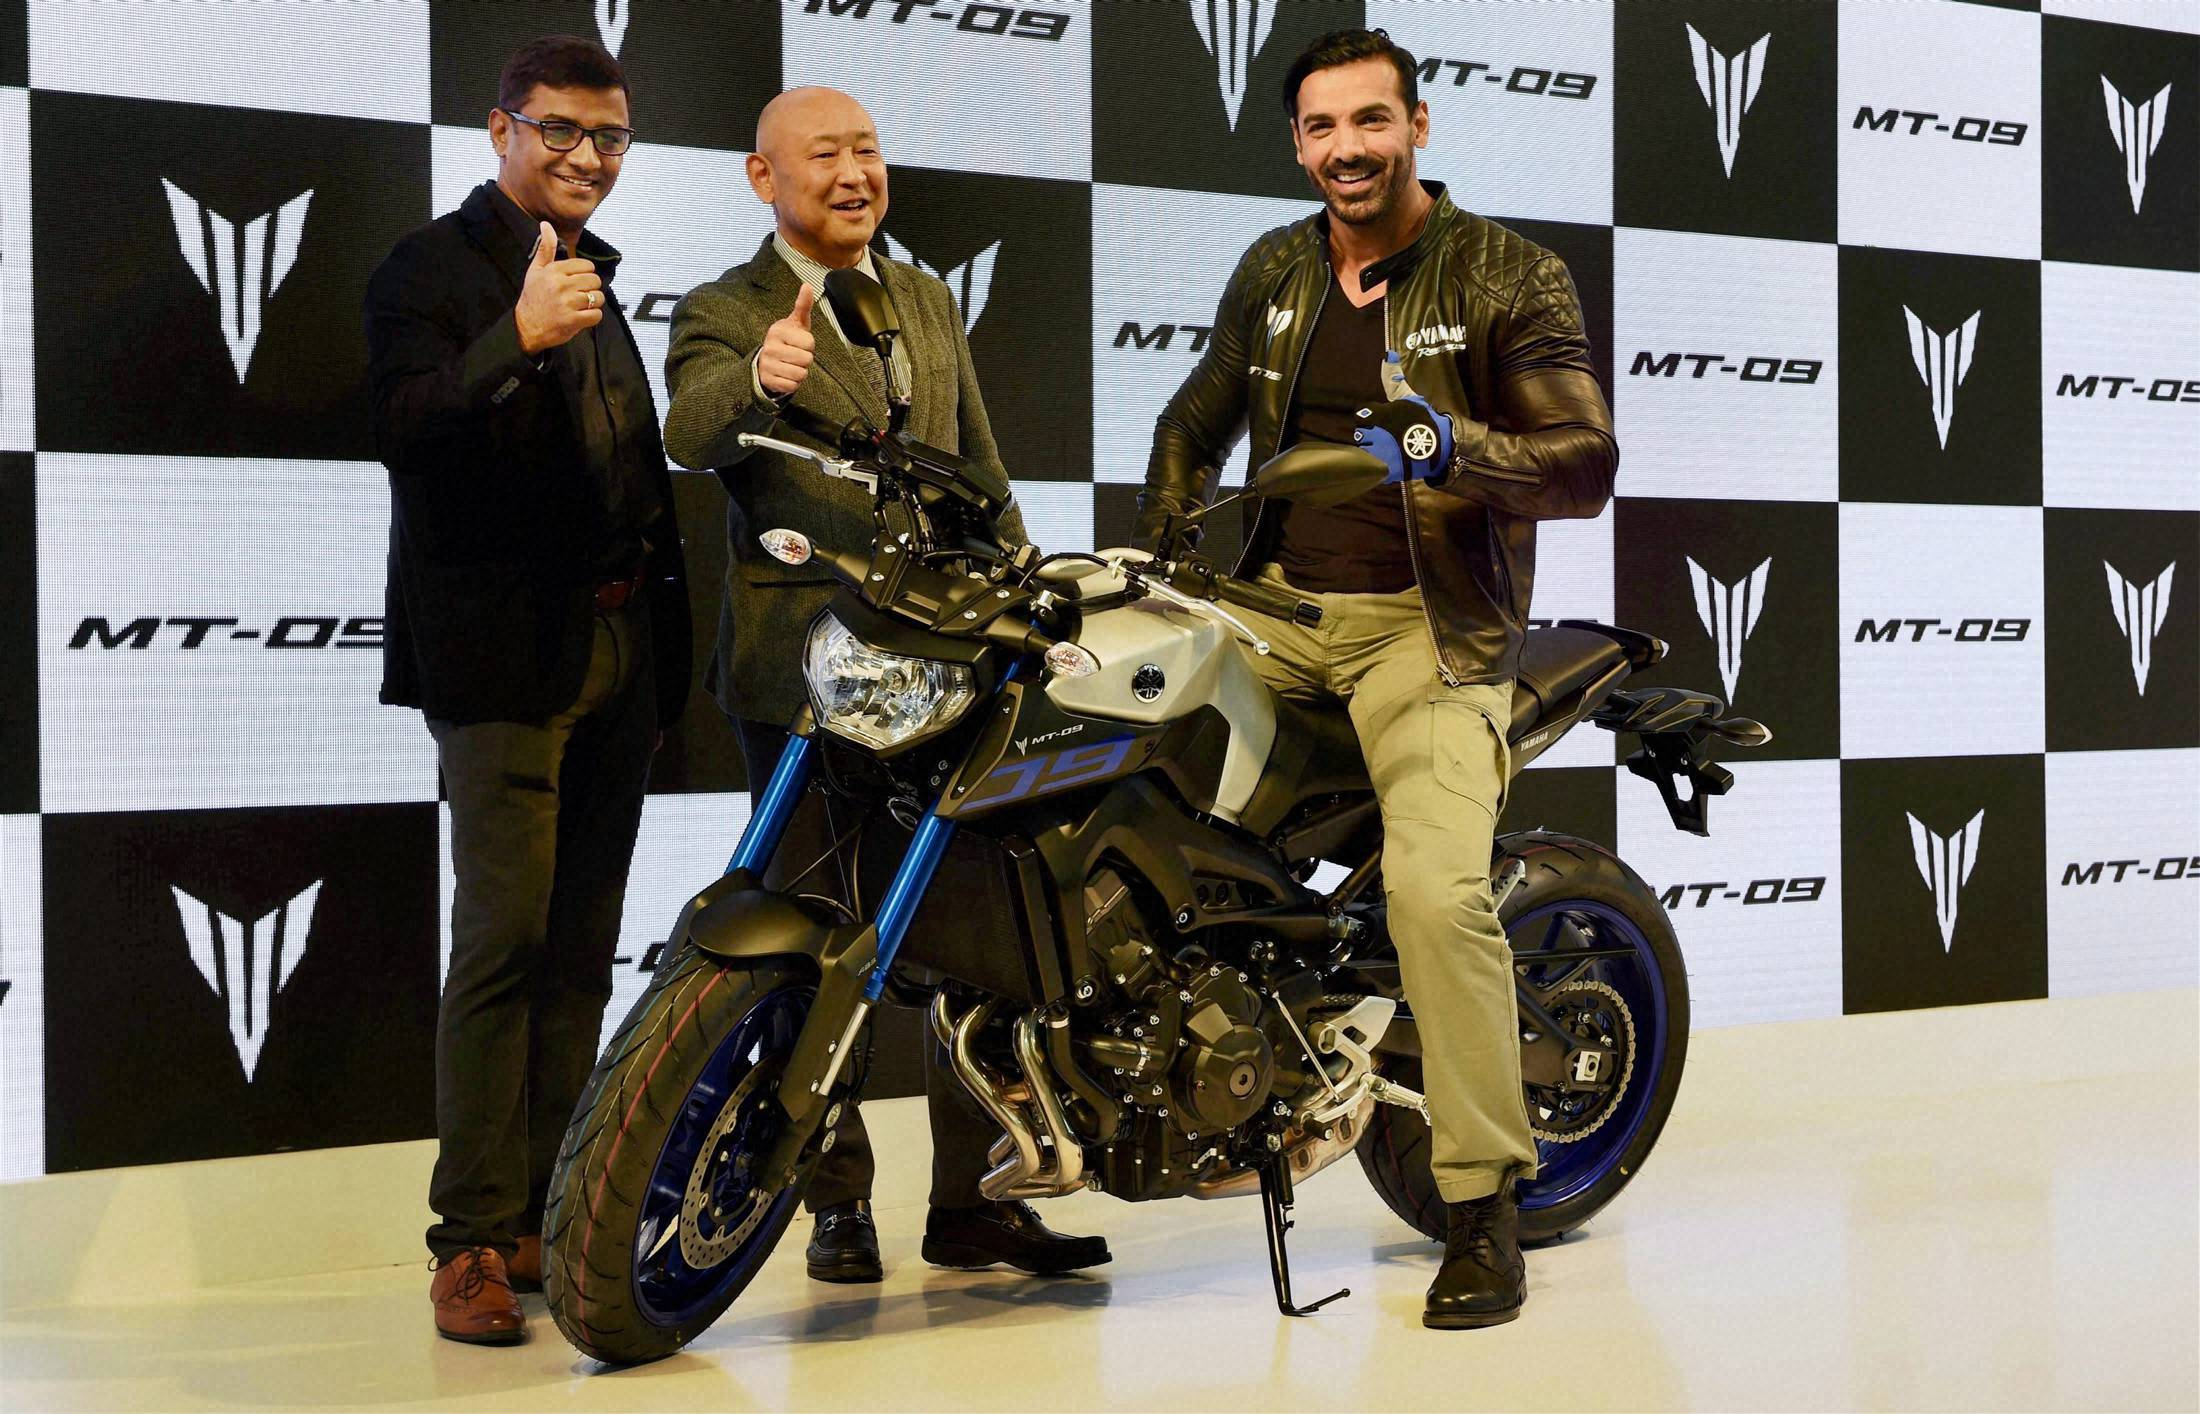 John Abraham at the launch of Yamaha's new motorbike at Auto Expo 2016